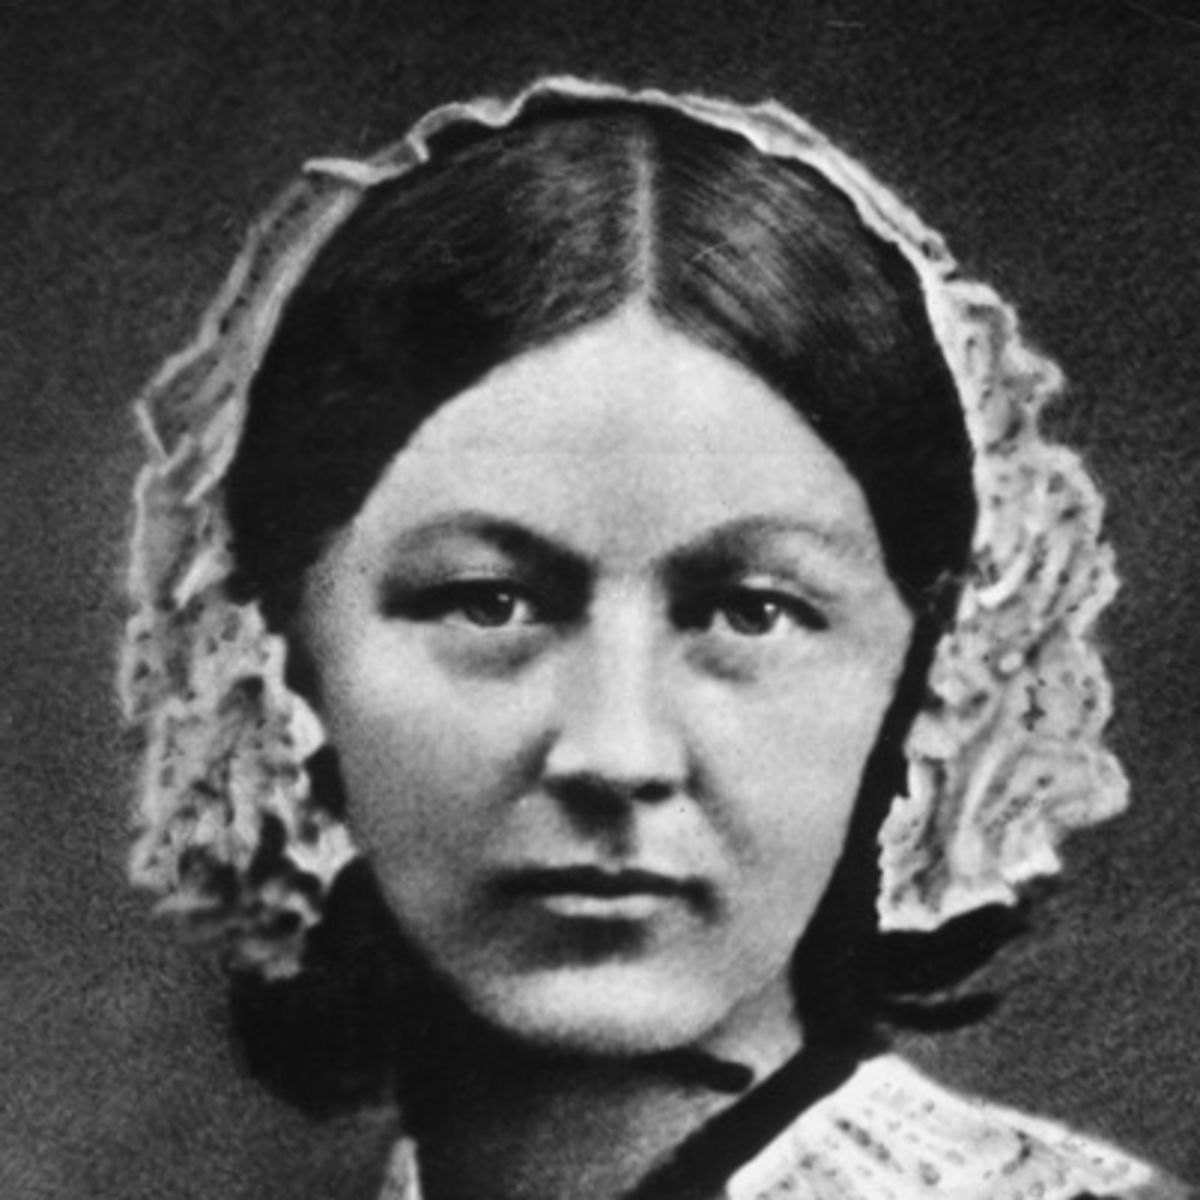 Florence Nightingale via biography.com